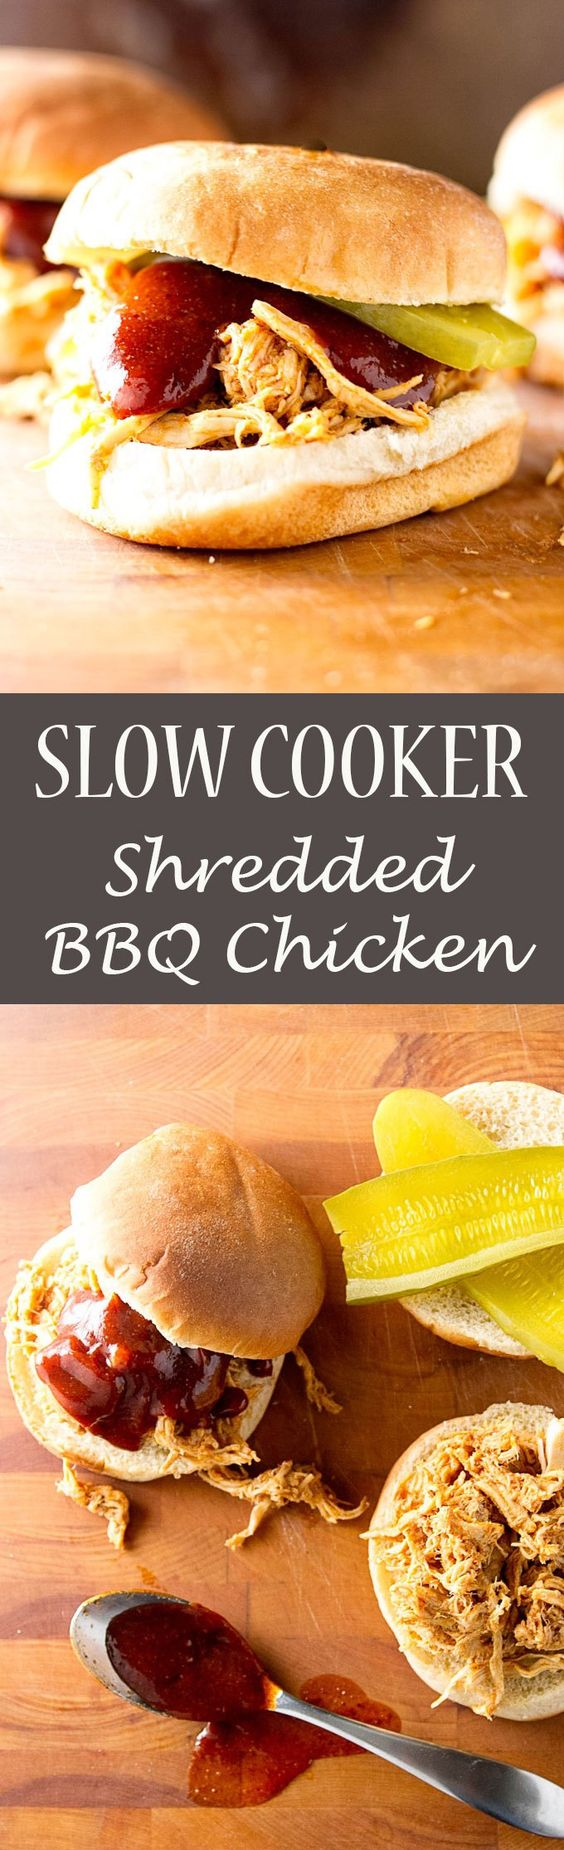 Slow cooker shredded BBQ chicken | get more sandwich ideas! https://www.pinterest.com/april7116/burgers-sandwiches/